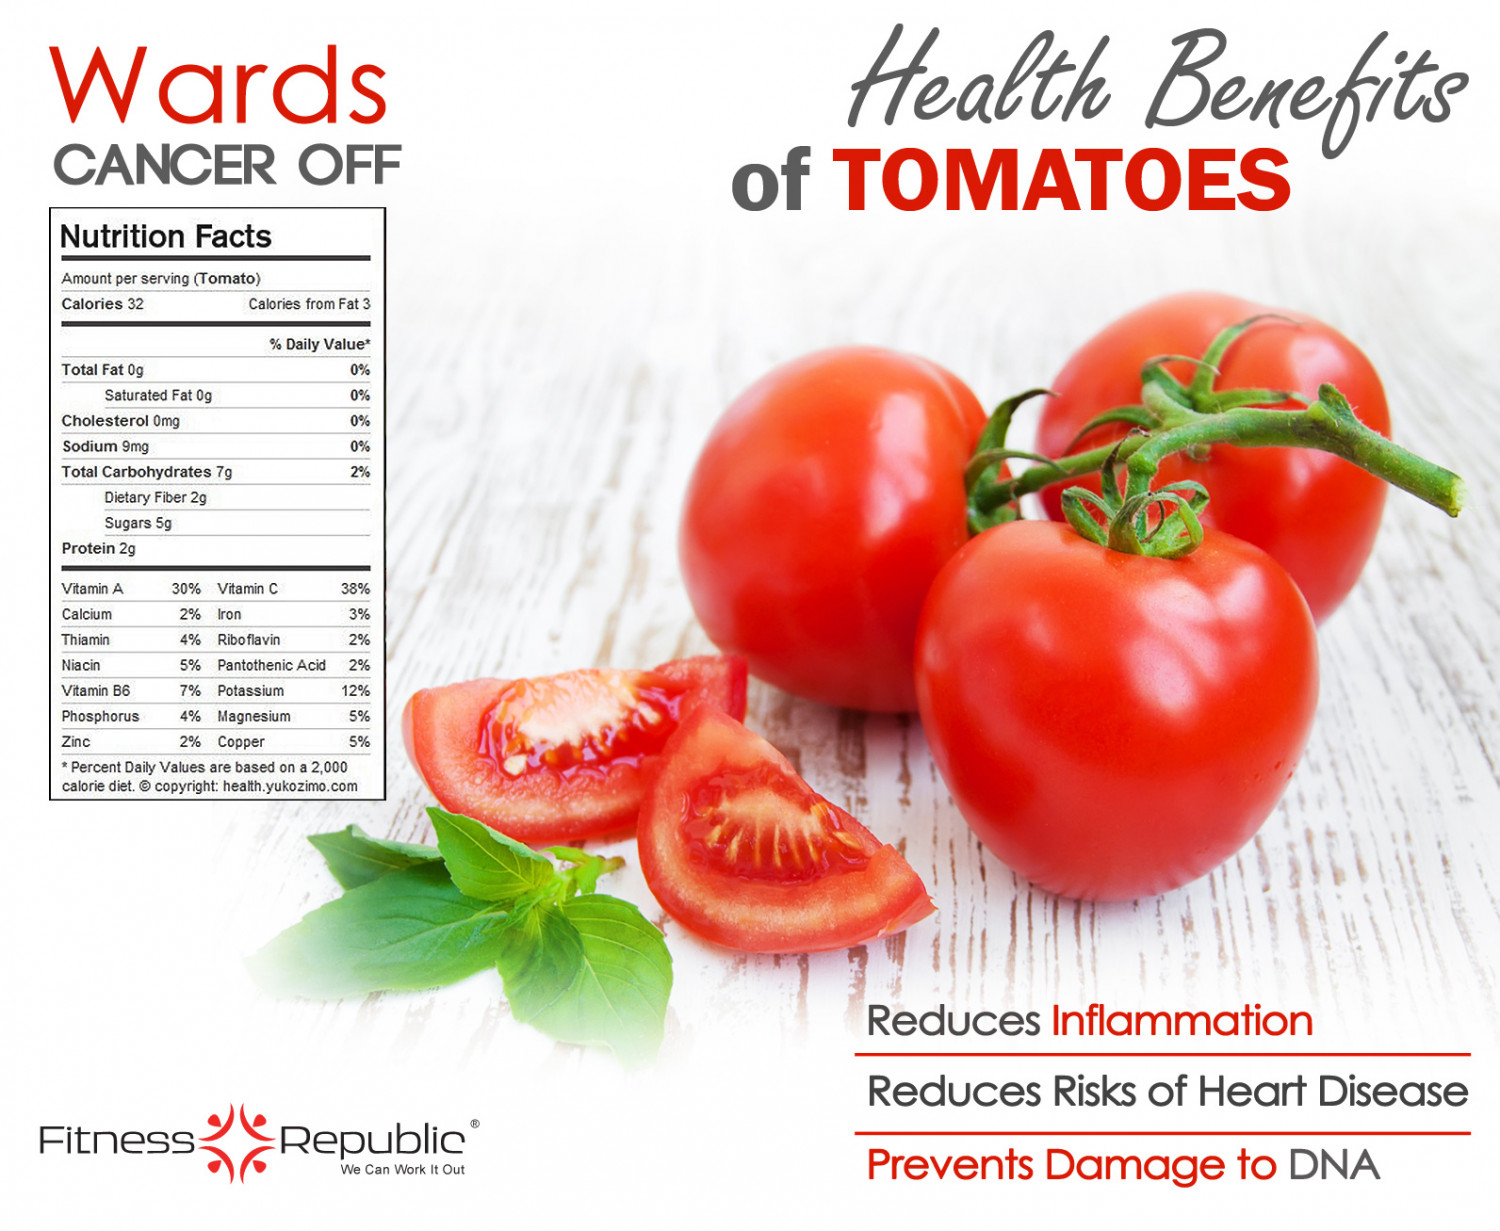 Health Benefits of Tomatoes Infographic